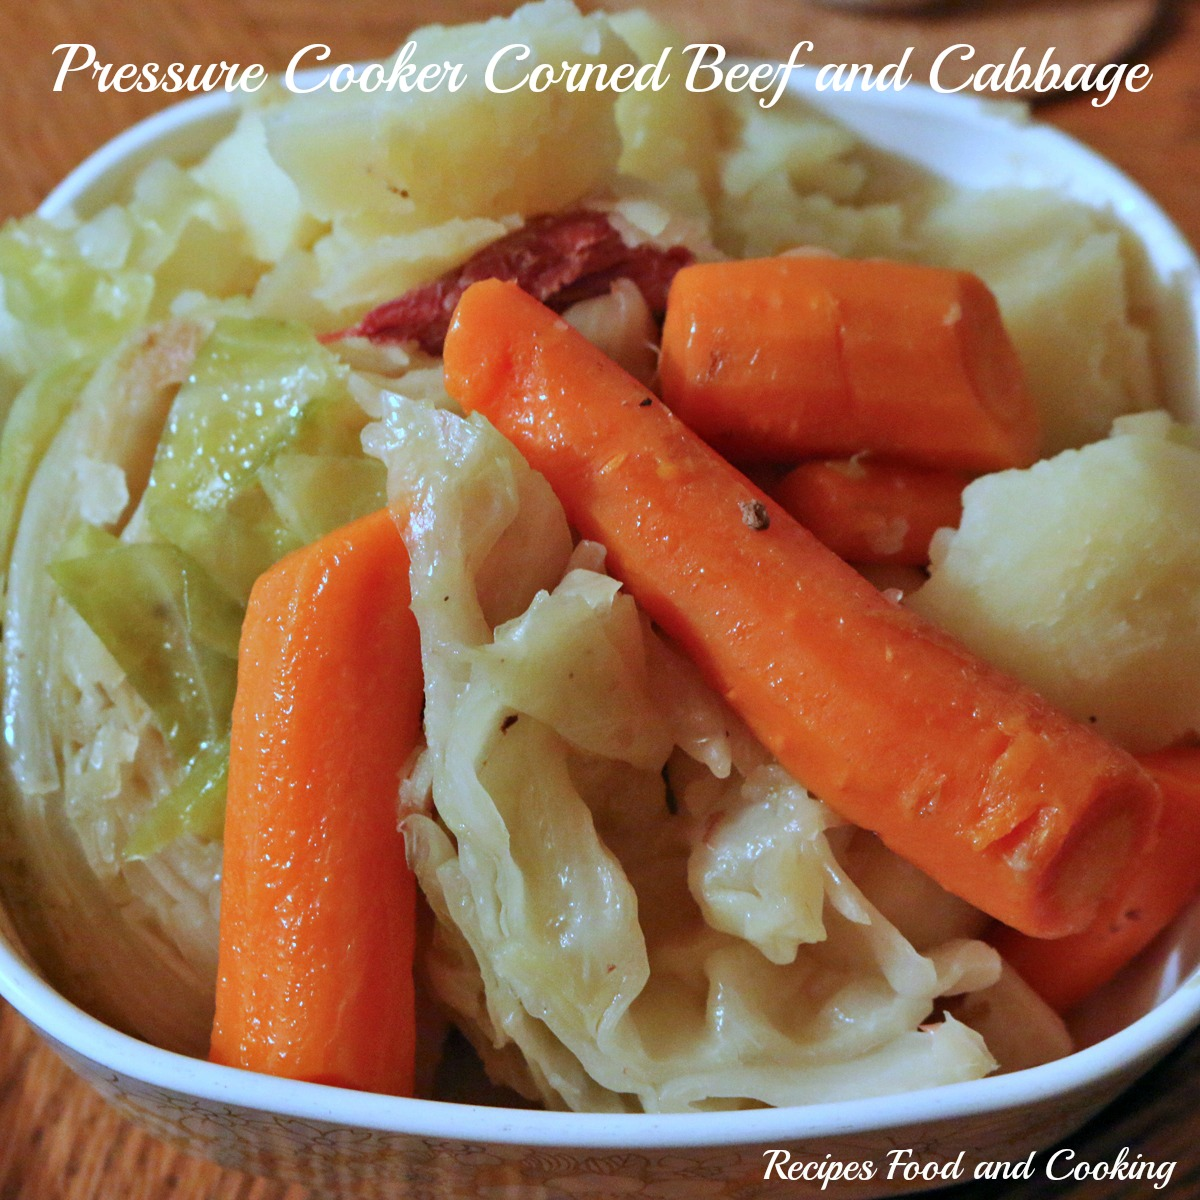 Pressure Cooker Corned Beef with Cabbage, Carrots and Potatoes